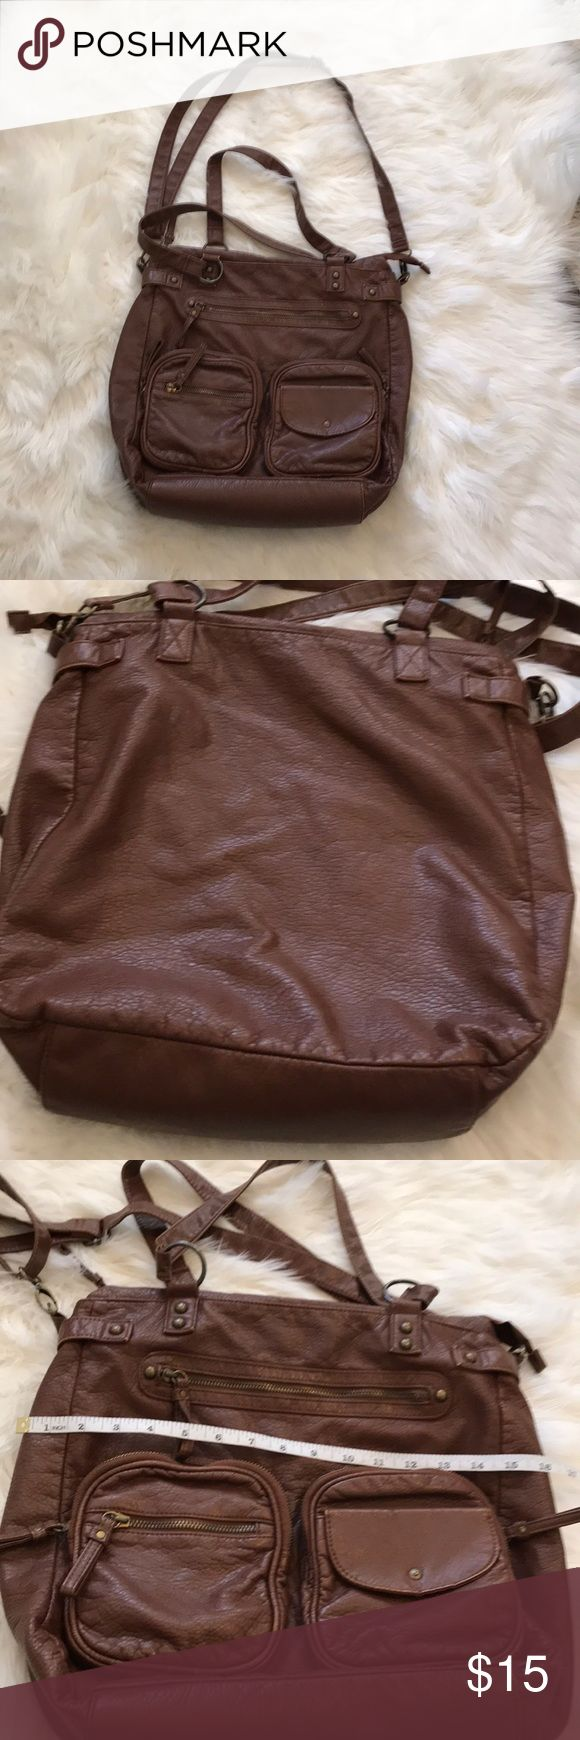 Barbados oversized bag Beautiful faux leather oversized bag perfect overnight, school and traveling gently used minor wear in tear shown in picture very roomy lots of pockets long strap adjustable two short hand straps bronze detailing the bag you need when on the go🆗 🎈Thank you and Happy Poshing🎈 Barbados Bags Crossbody Bags